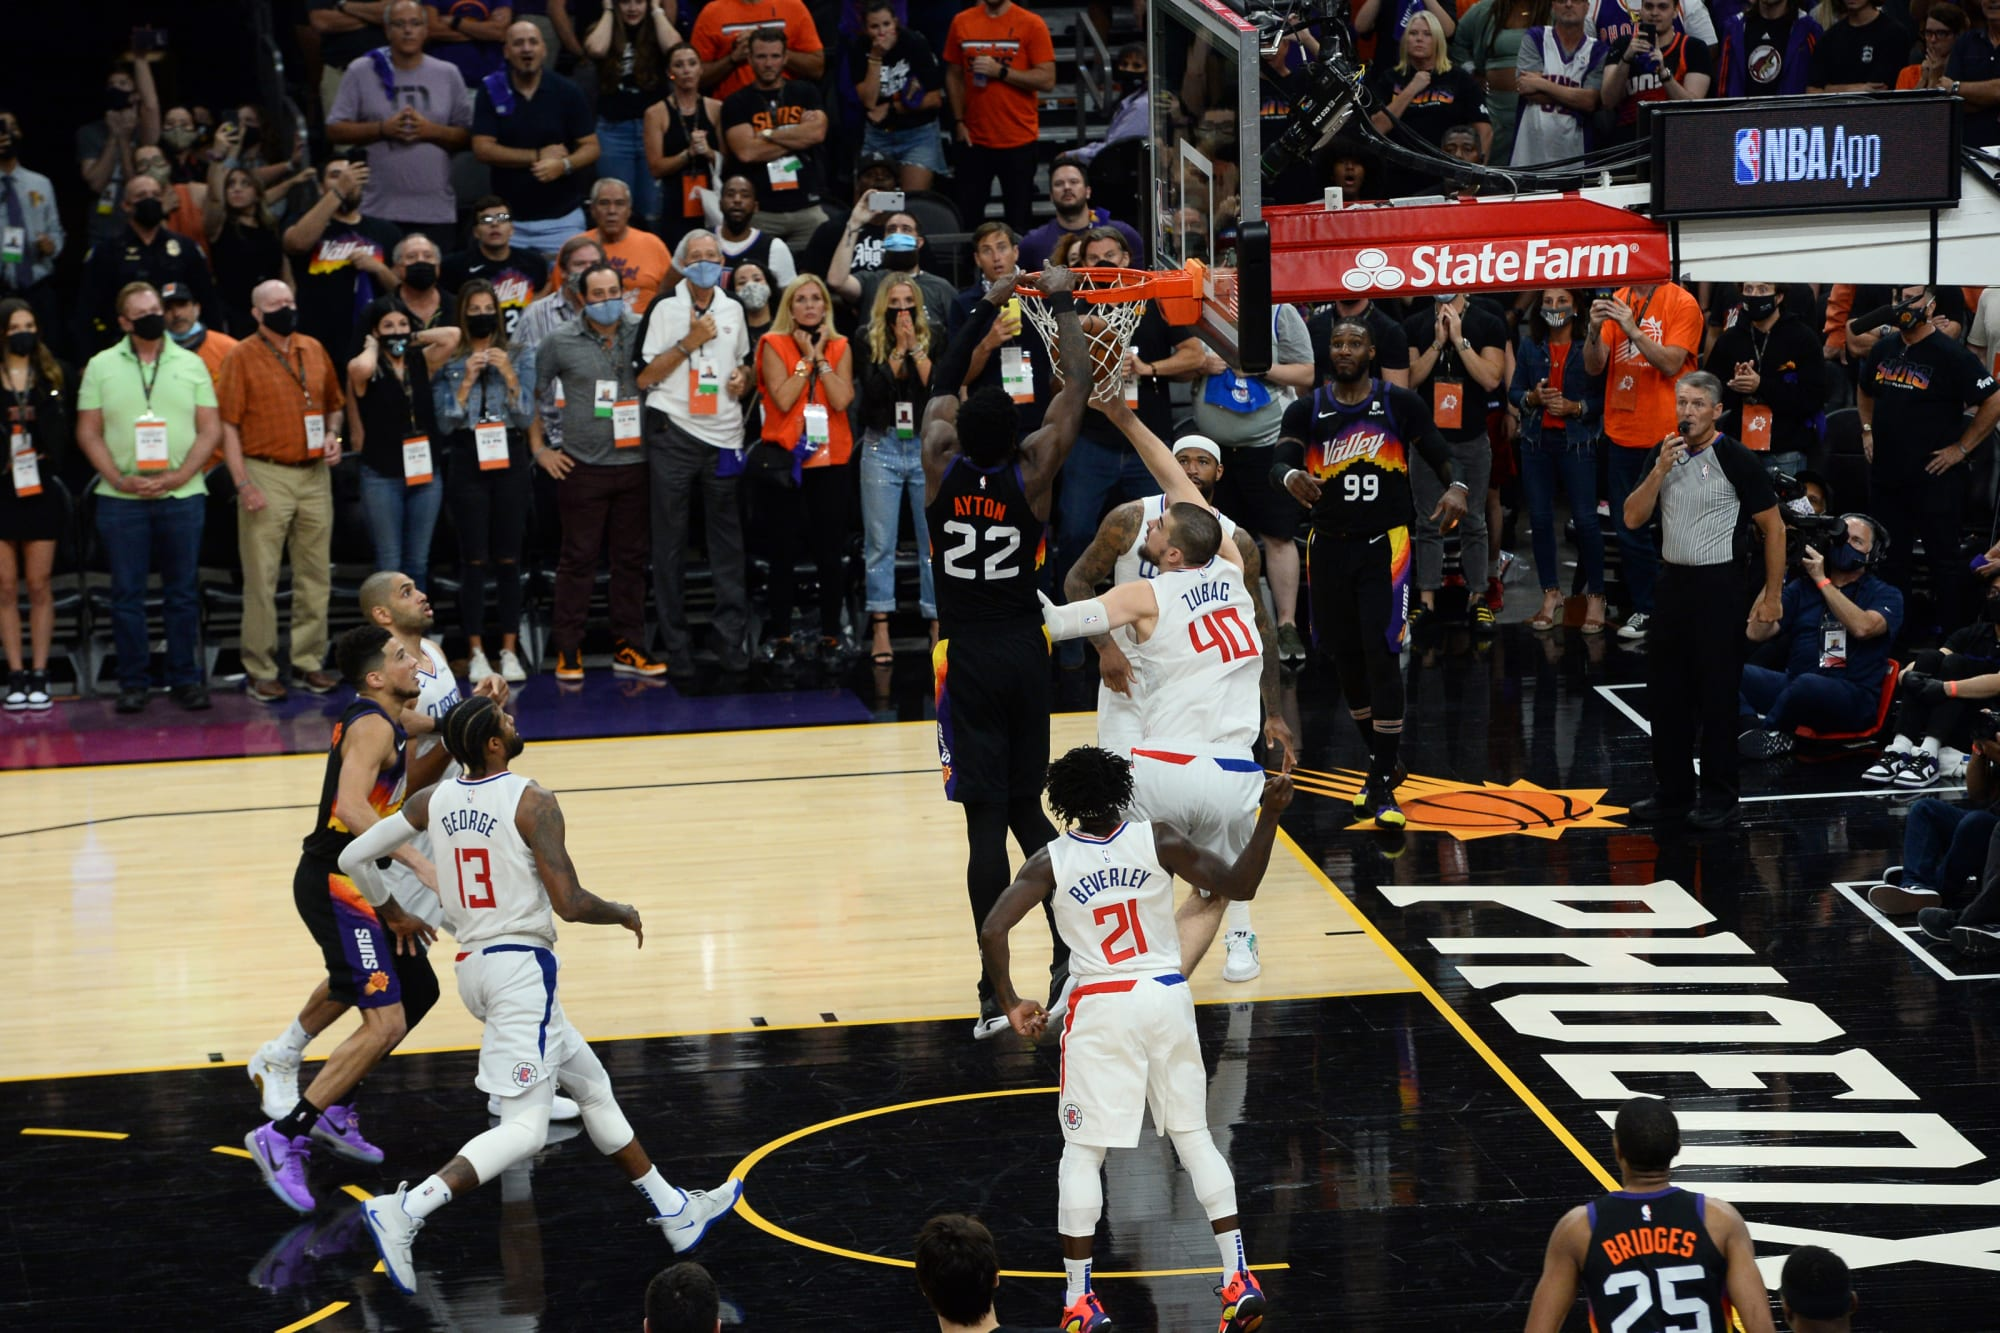 9 incredible photos of Deandre Ayton's alley-oop – Iraq News